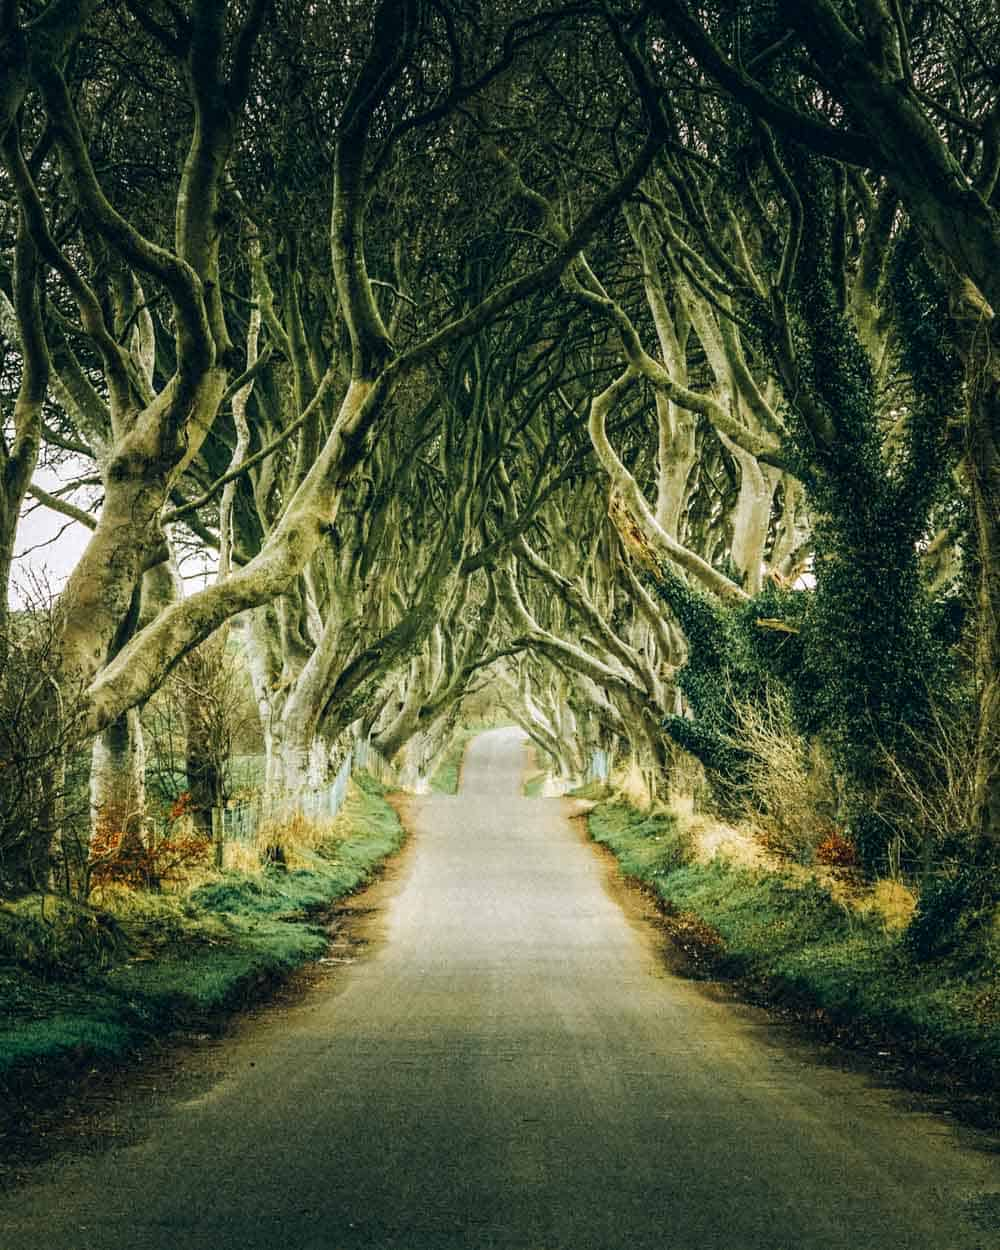 Magical landscape in Northern Ireland known as Dark Hedges